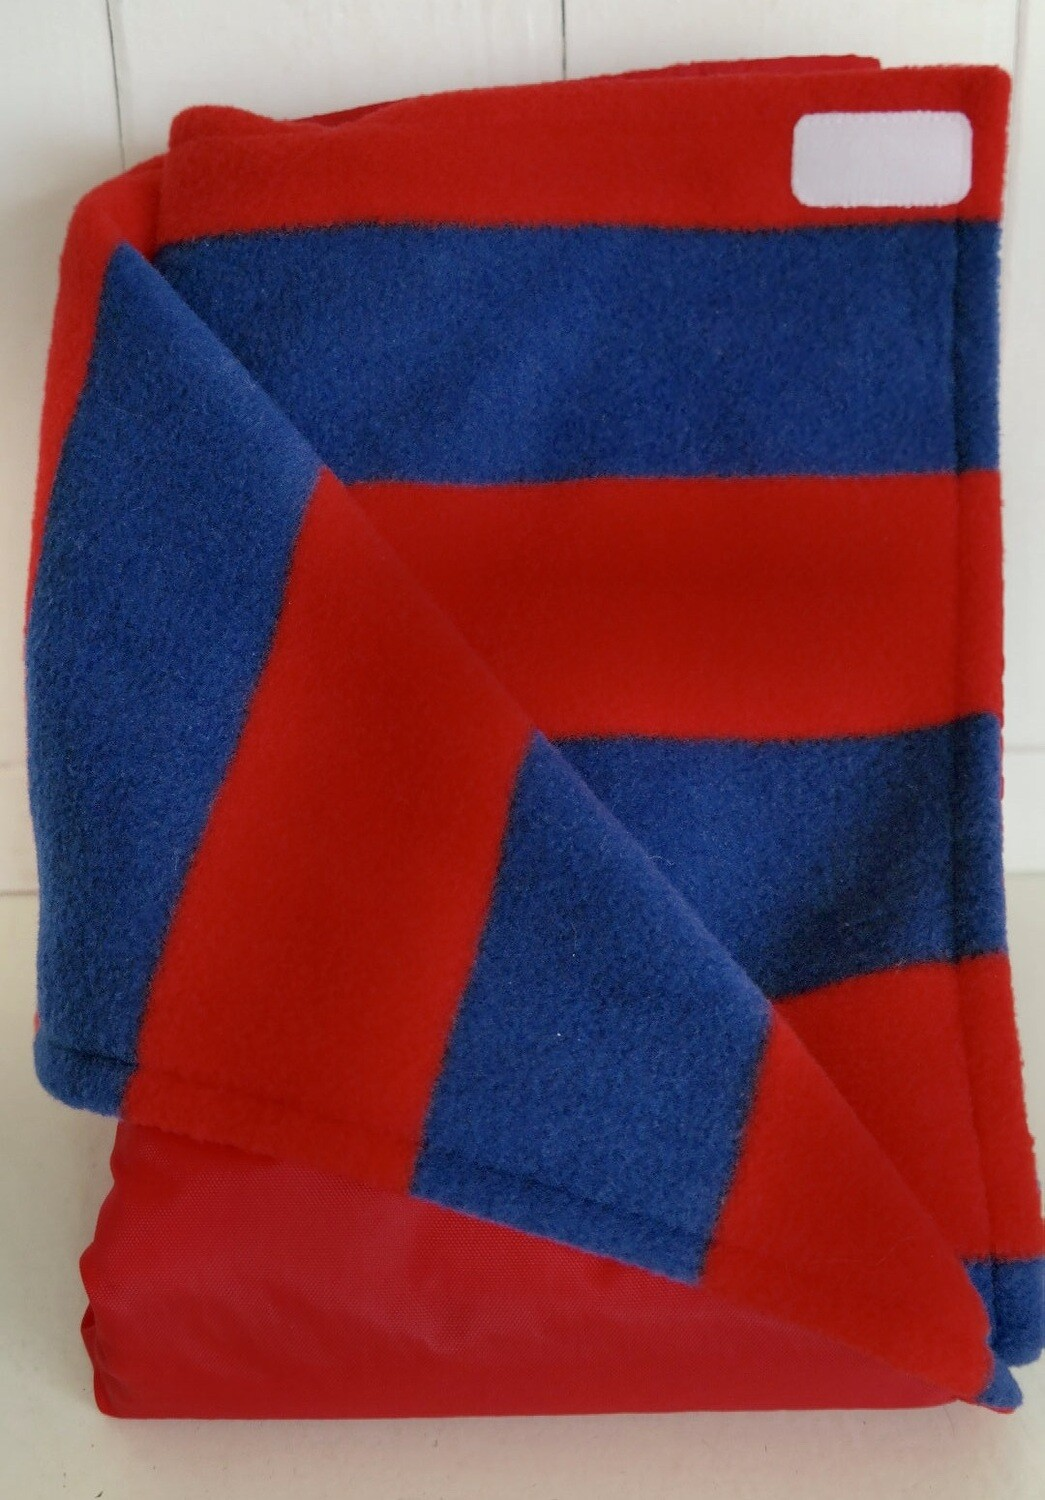 Pitt Patt Blanket 54C-Red/Red&Navy Stripe